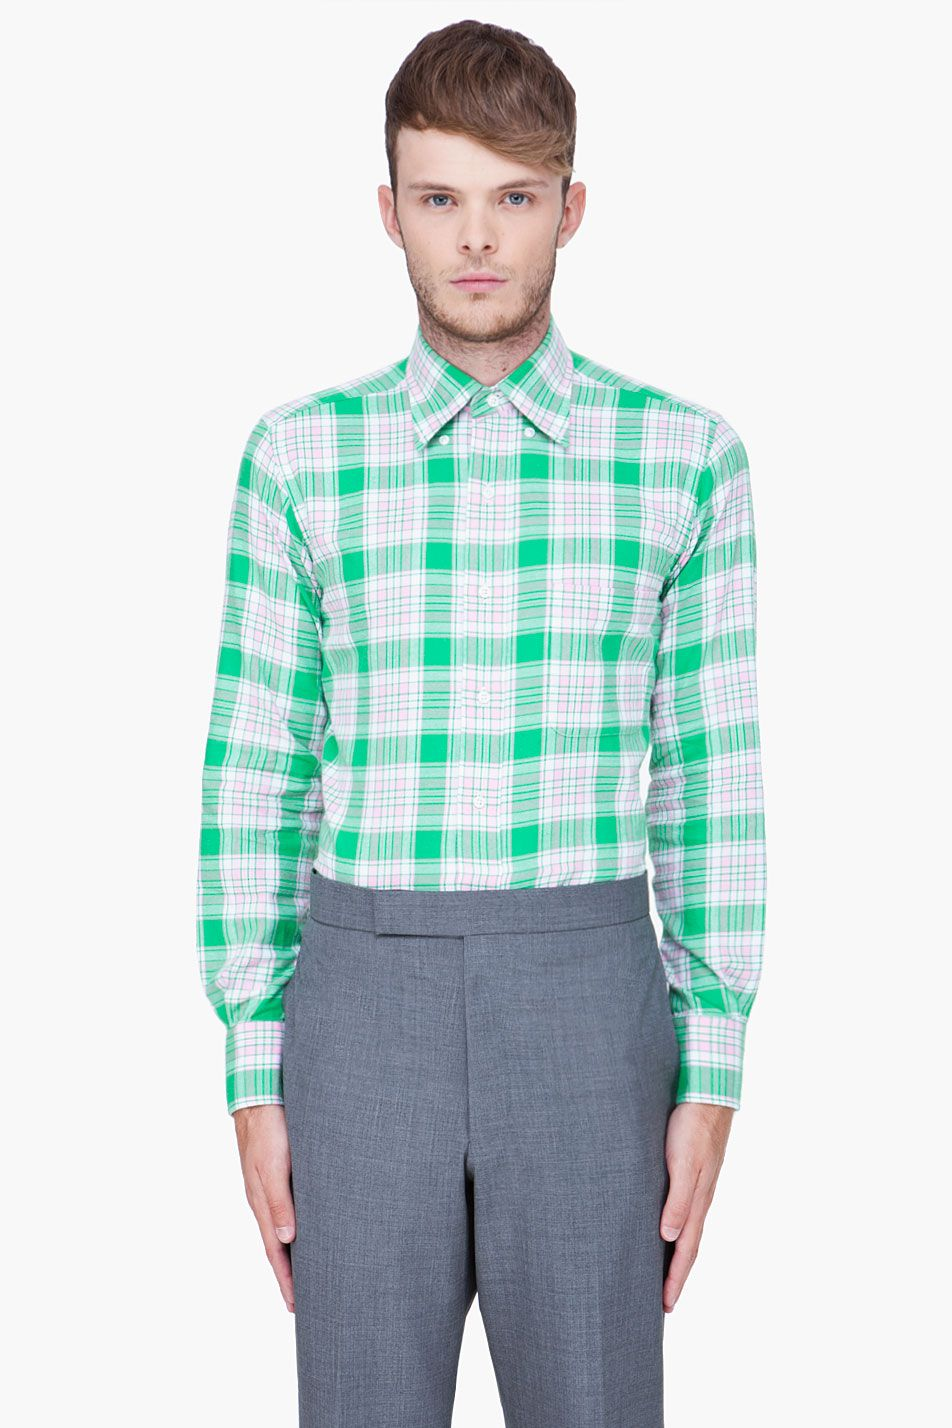 Red flannel unbuttoned  THOM BROWNE Green Plaid Flannel Shirt  mens styles  Pinterest